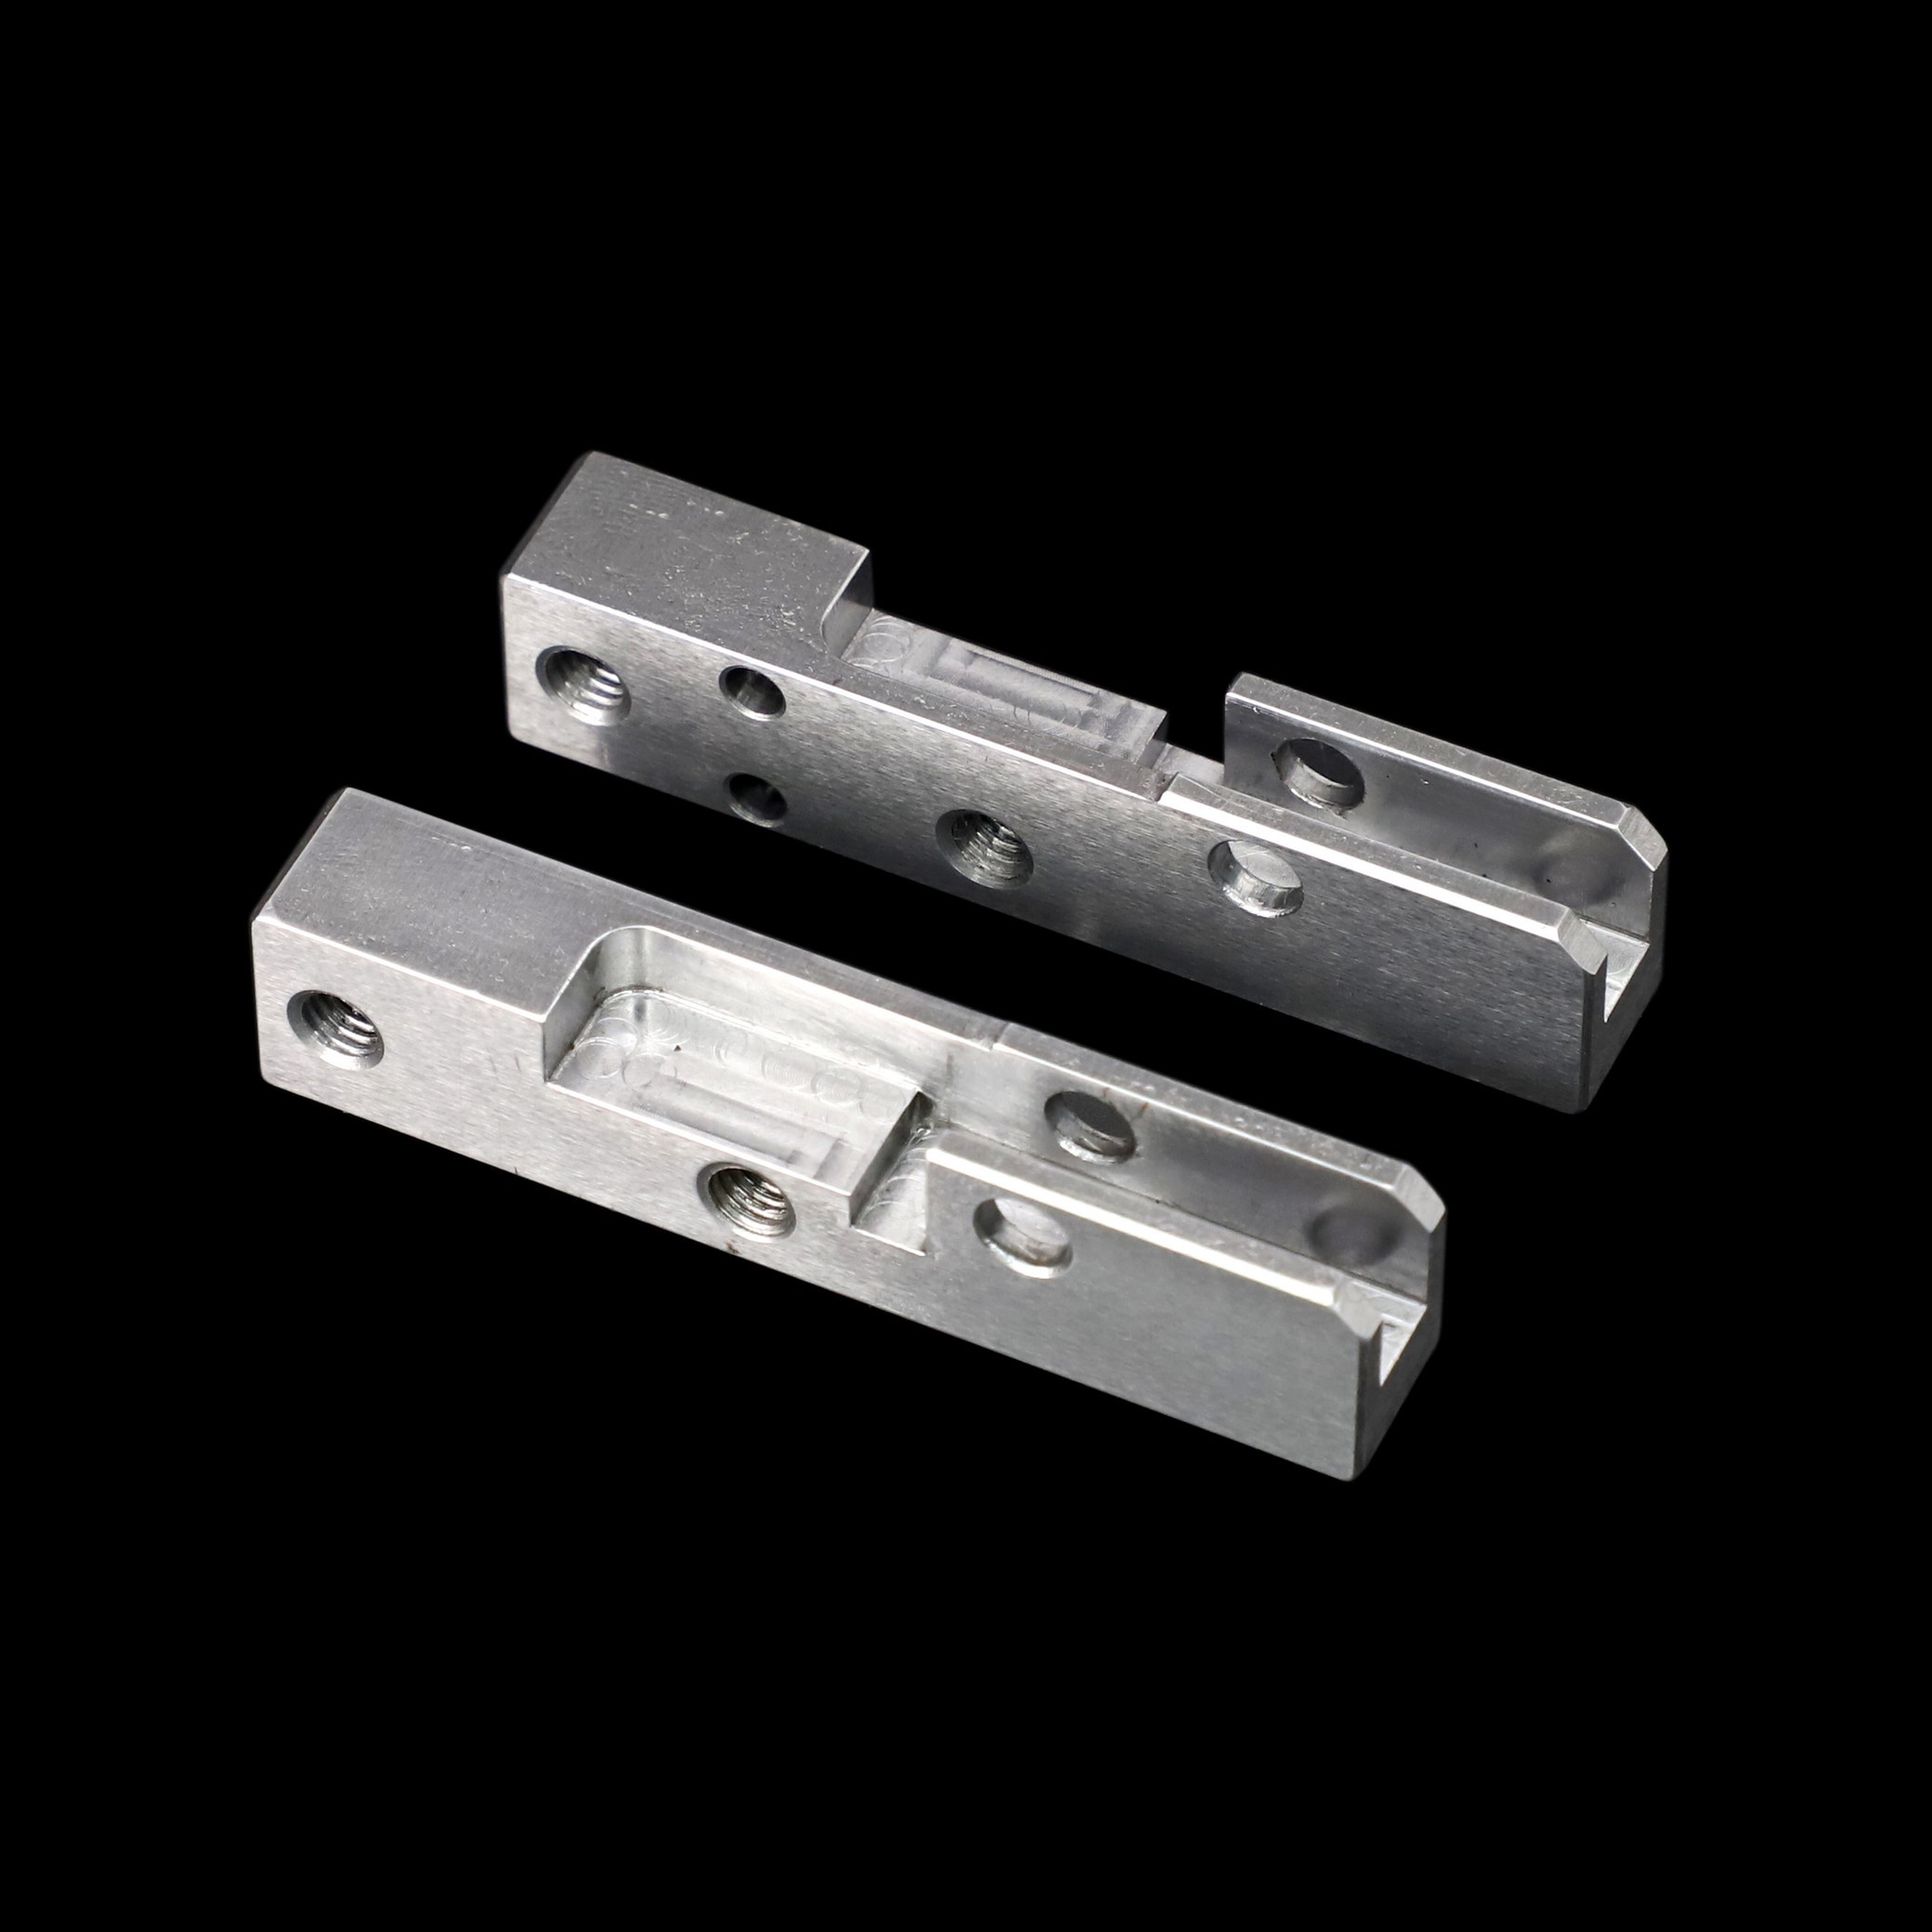 Laser Cutting Anodized AL7075 Aluminum CNC Turning Parts